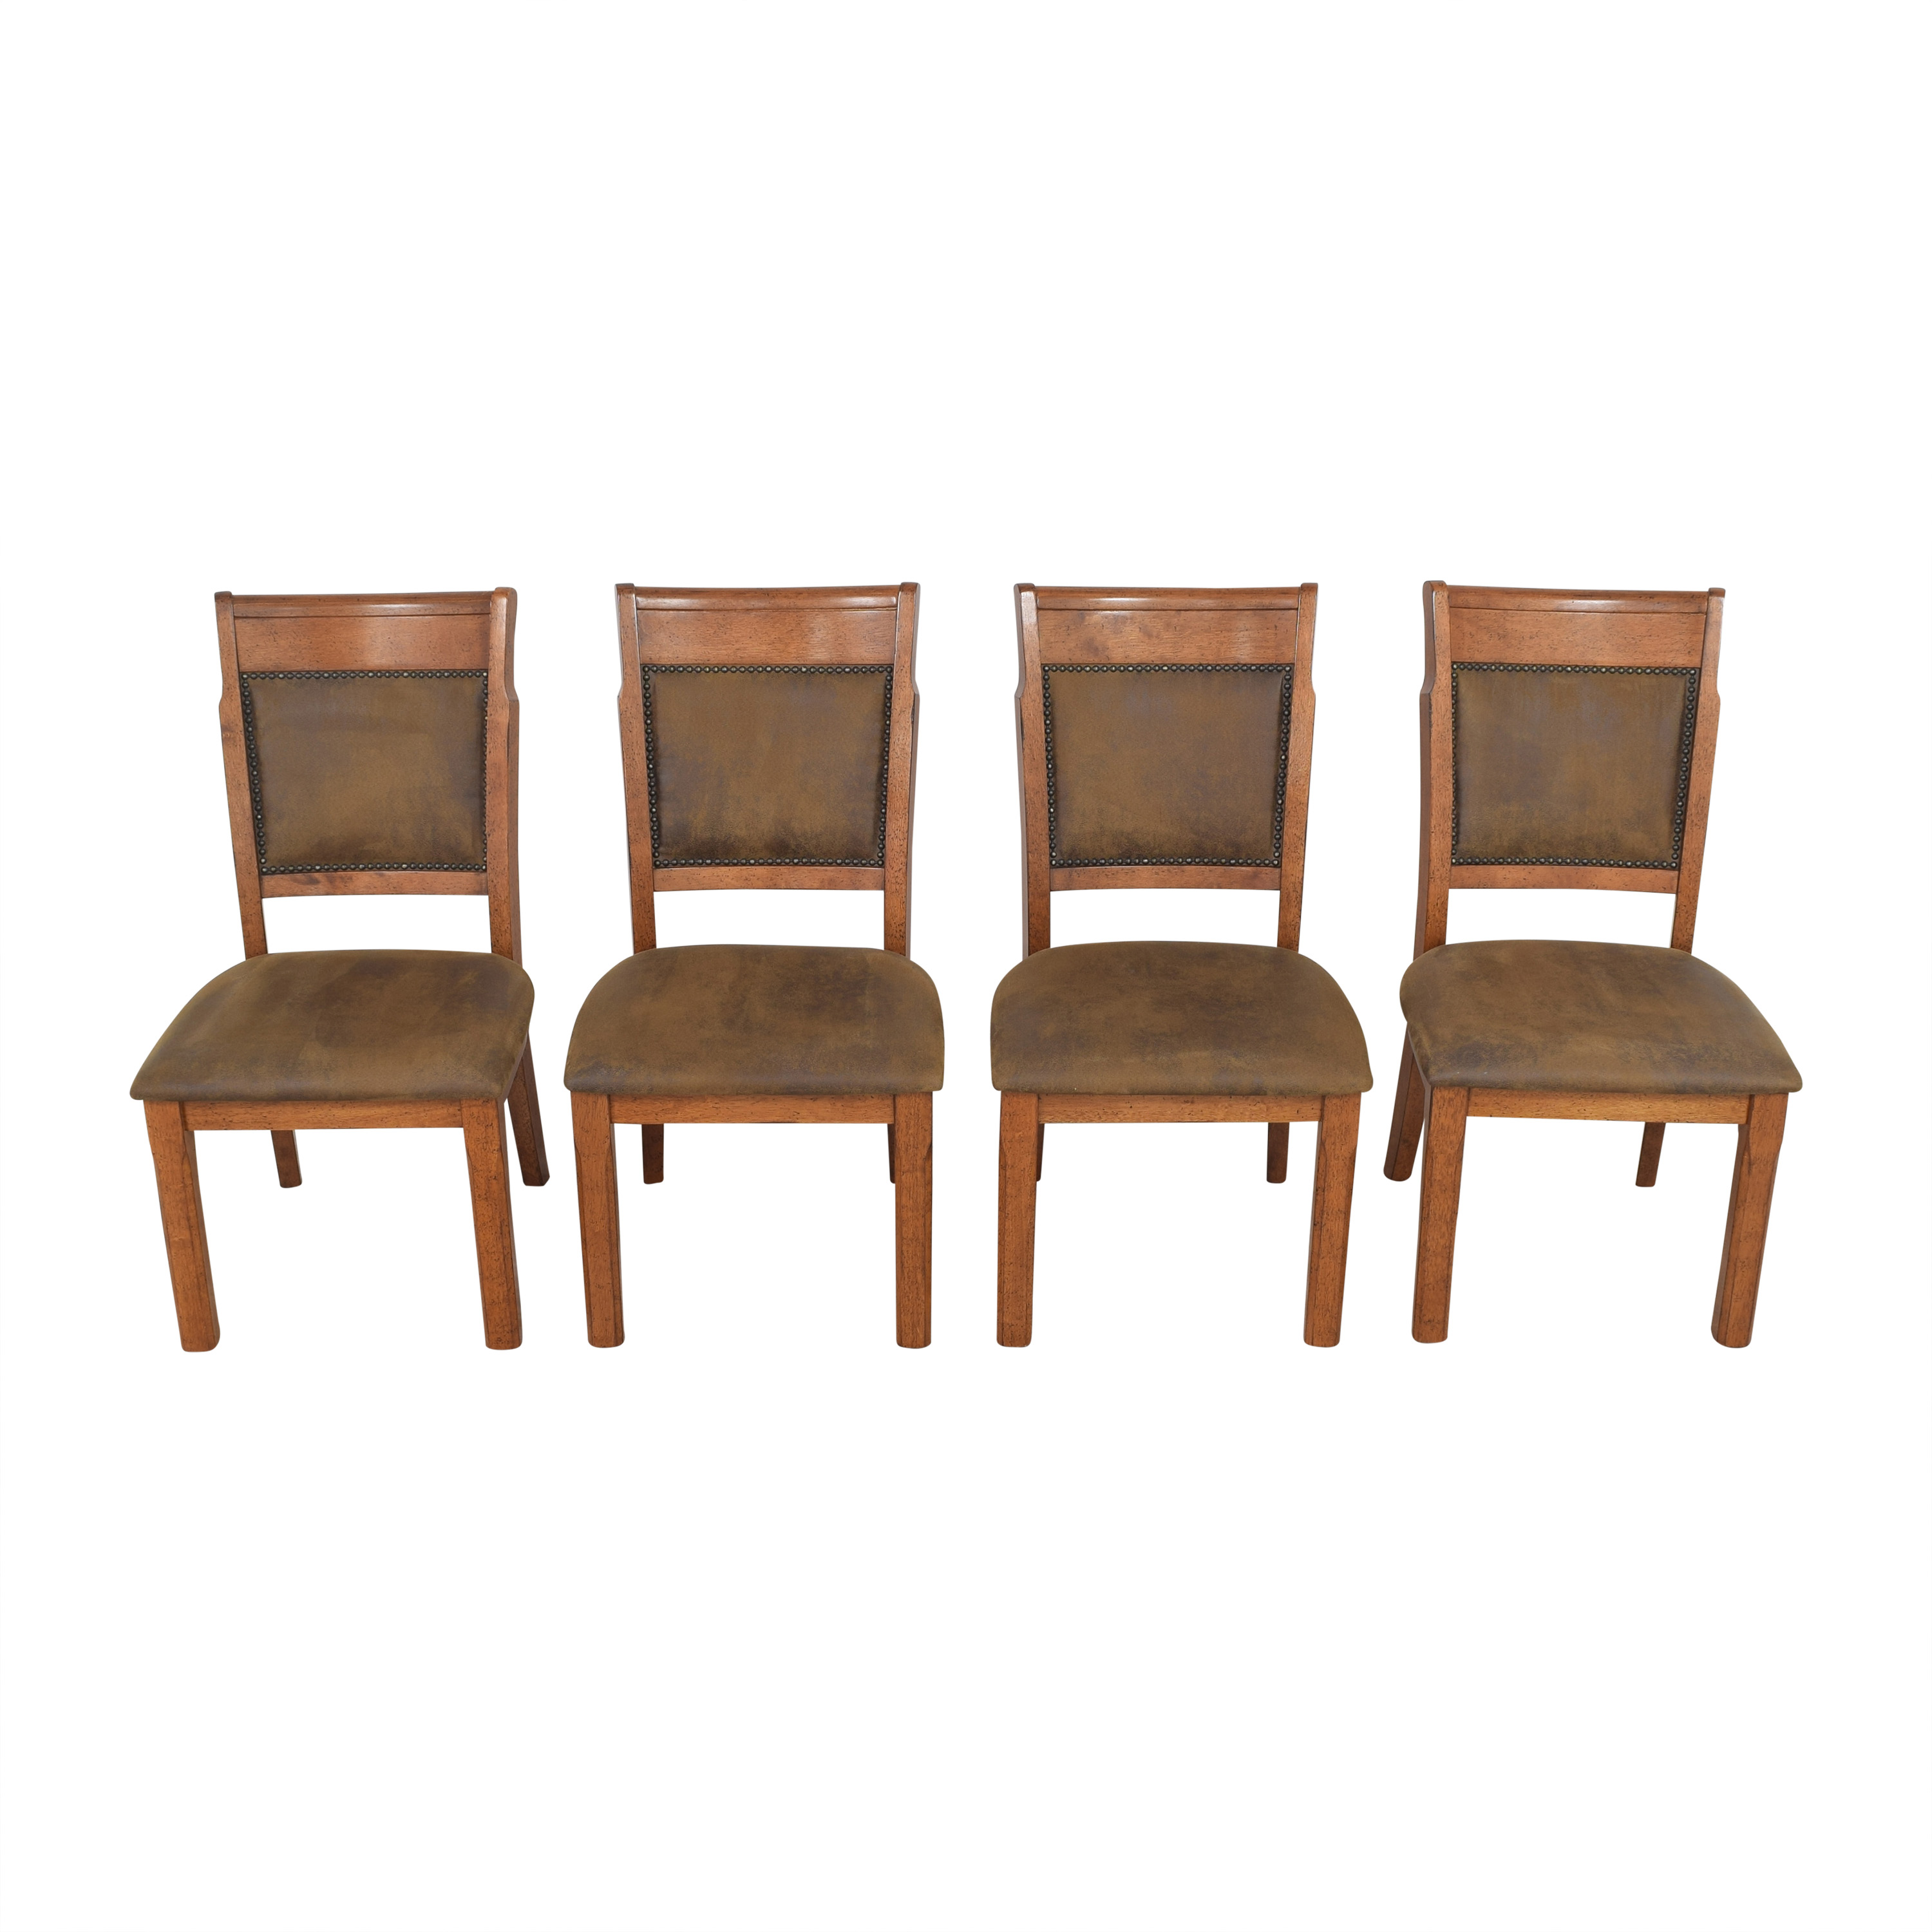 Raymour & Flanigan Raymour & Flanigan Soleste Dining Chairs on sale